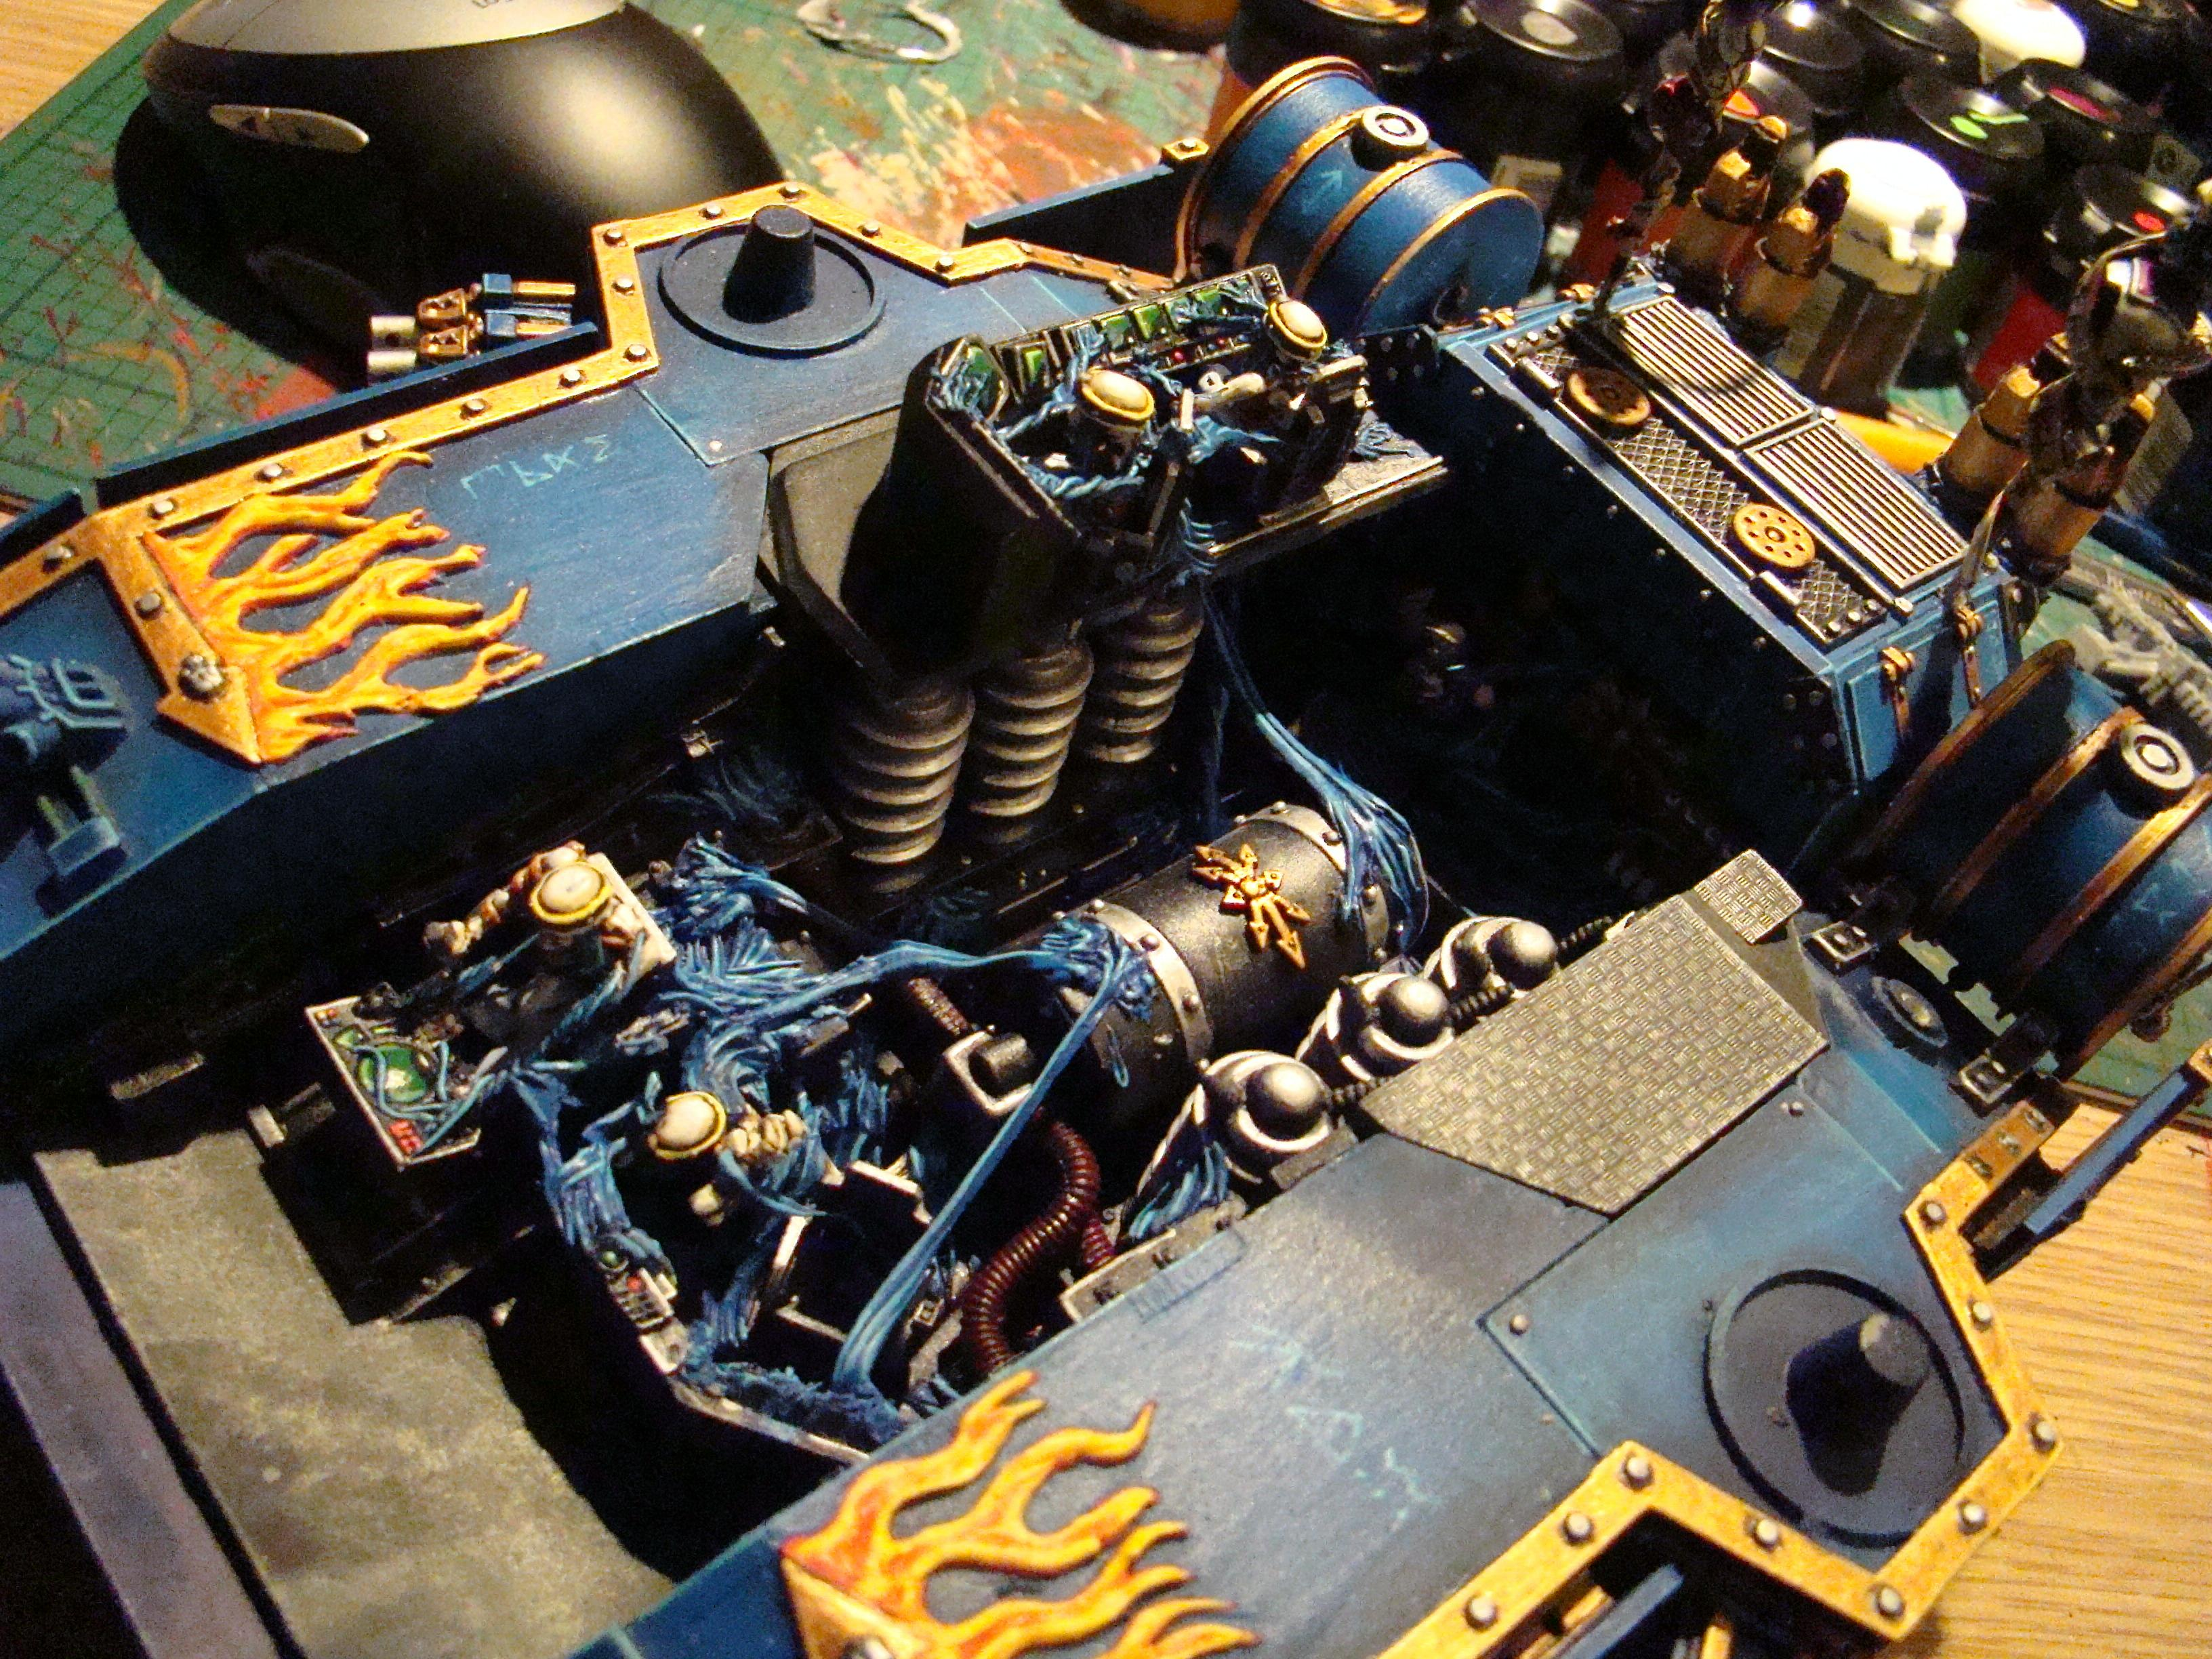 Baneblade, Chaos, Chaos Space Marines, Interior, Thousand Sons, Tzeentch, Warhammer 40,000